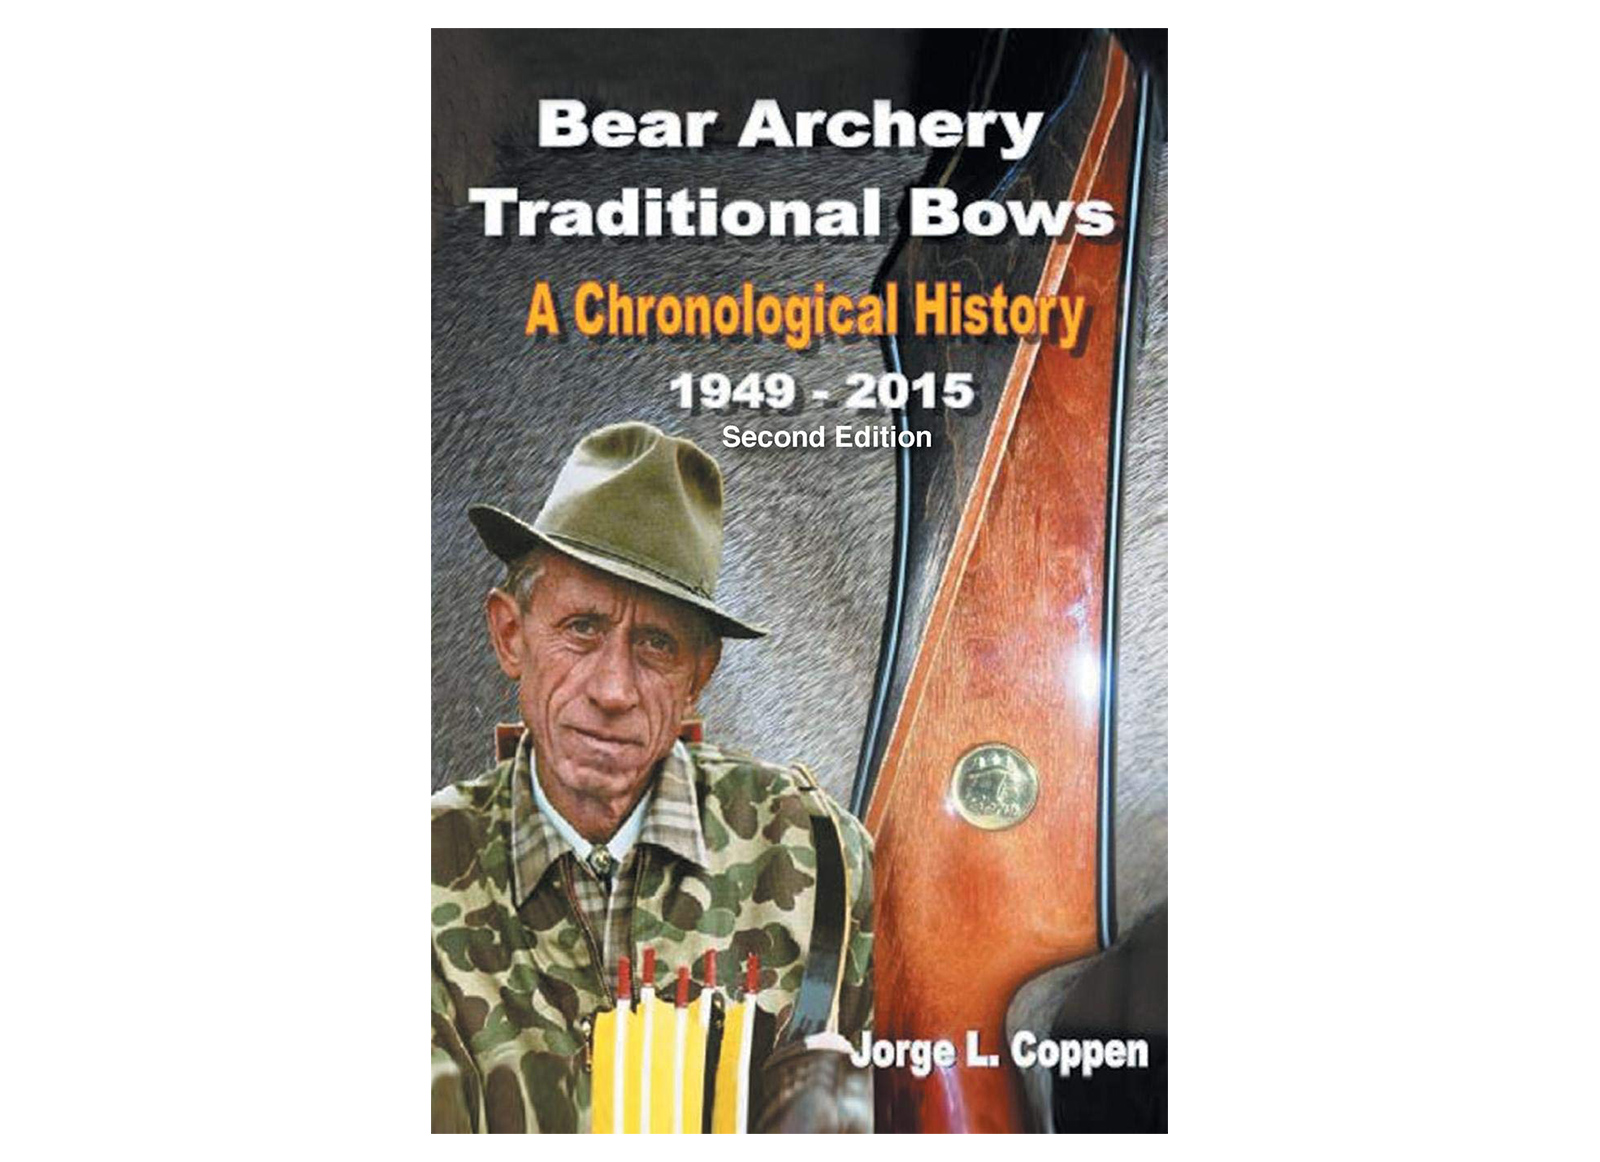 BEAR ARCHERY TRADITIONAL - LIBRO 'A CHRONOLOGICAL HYSTORY' DI JORGE COPPEN